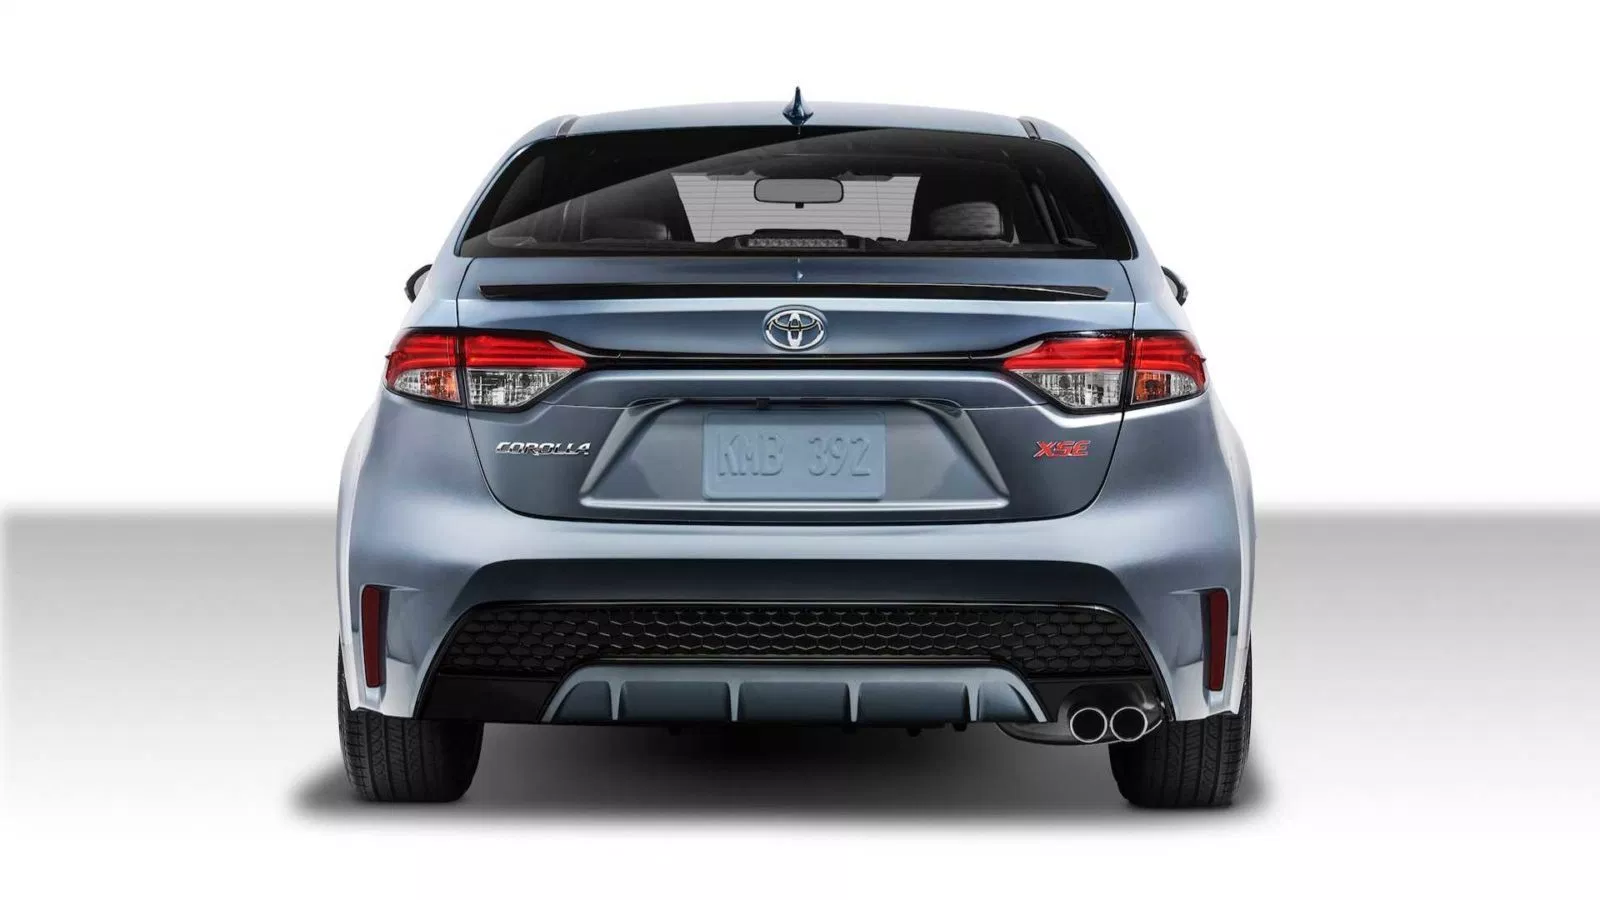 Toyota Corolla 2020 Exterior4 Latest Information About Toyota Cars Release Date Redesign And Rumors Our Cover Toyota Corolla Toyota Toyota Corolla Hatchback